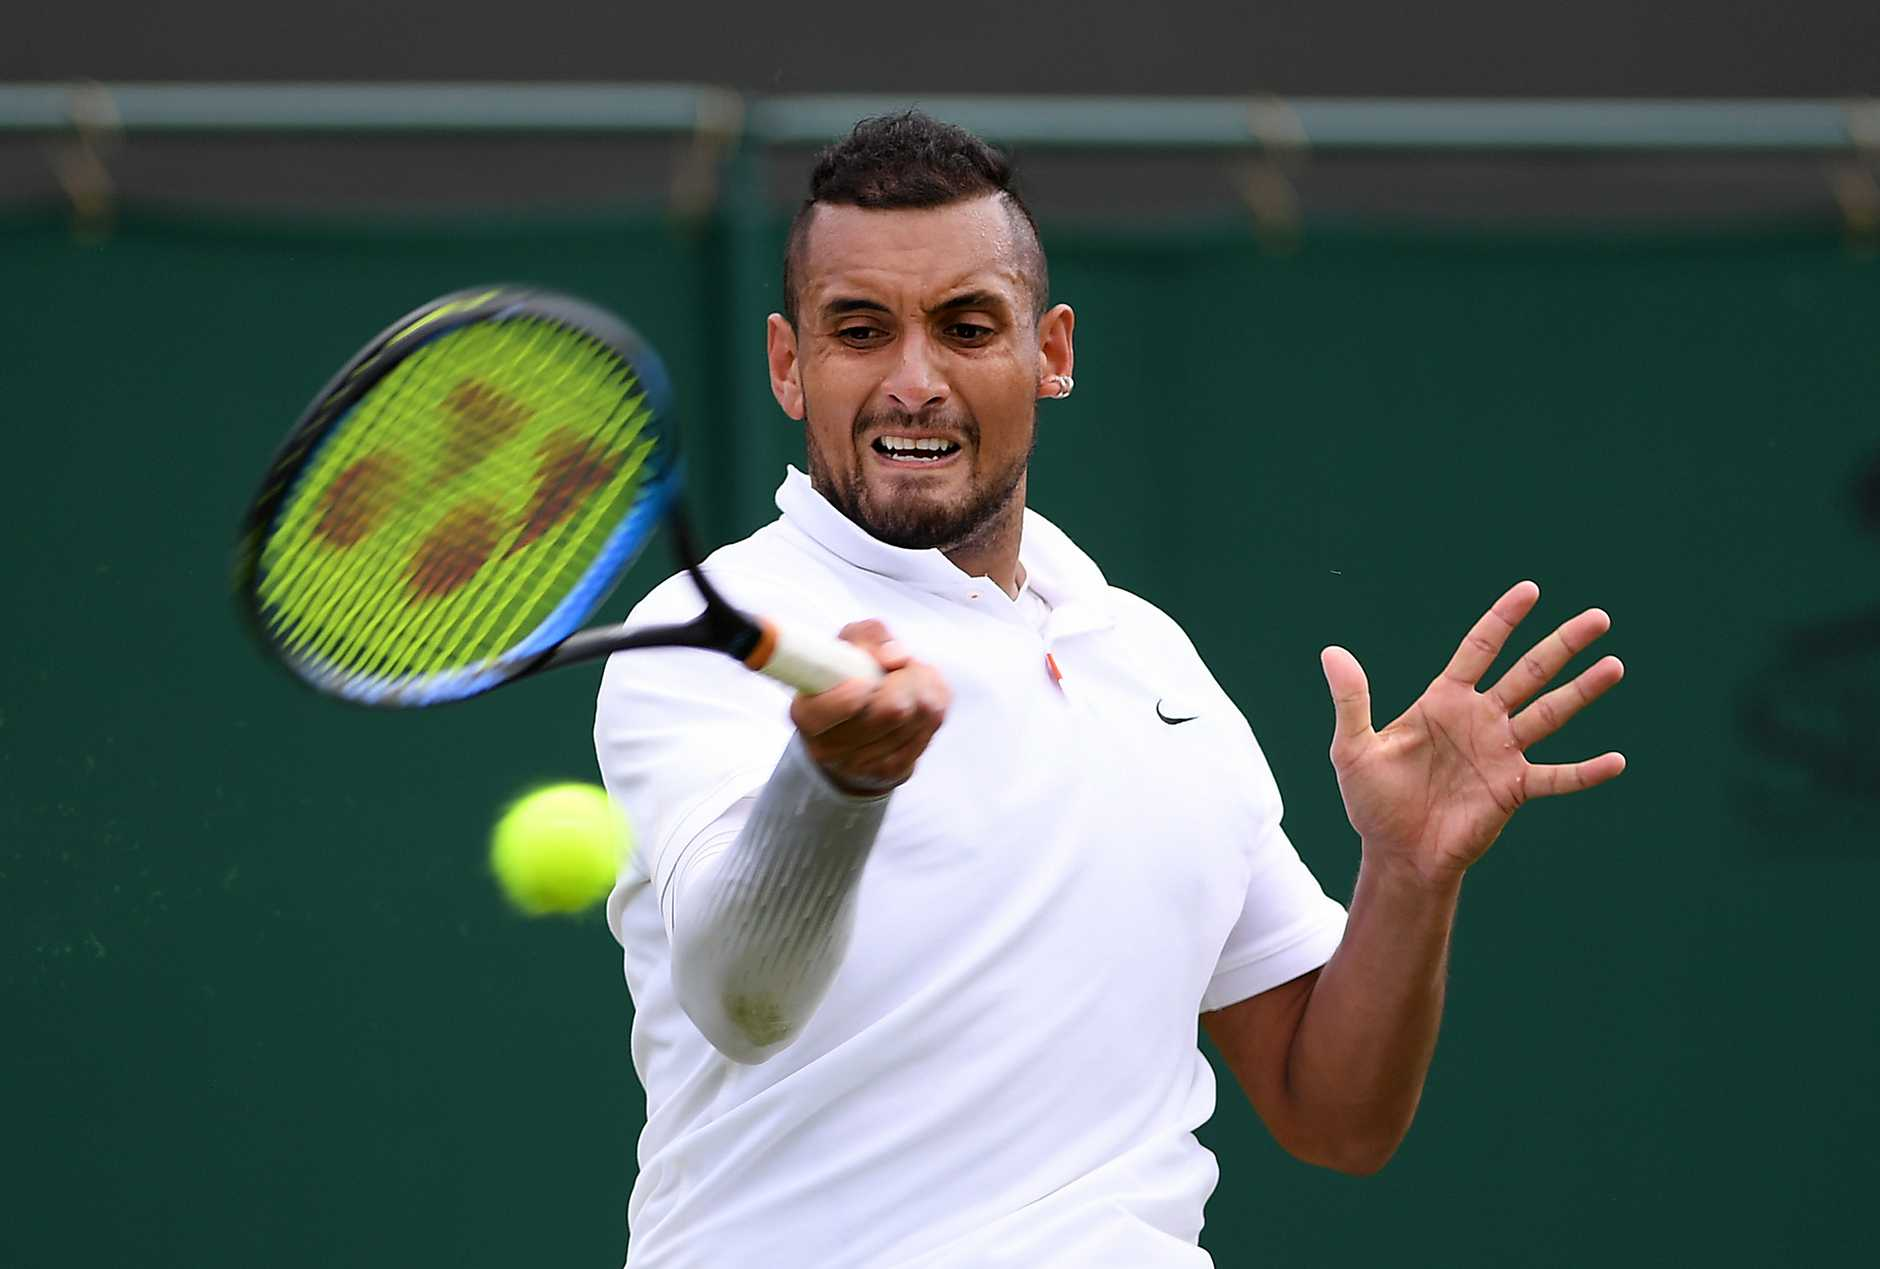 Nick Kyrgios fires back a shot in his first-round clash.